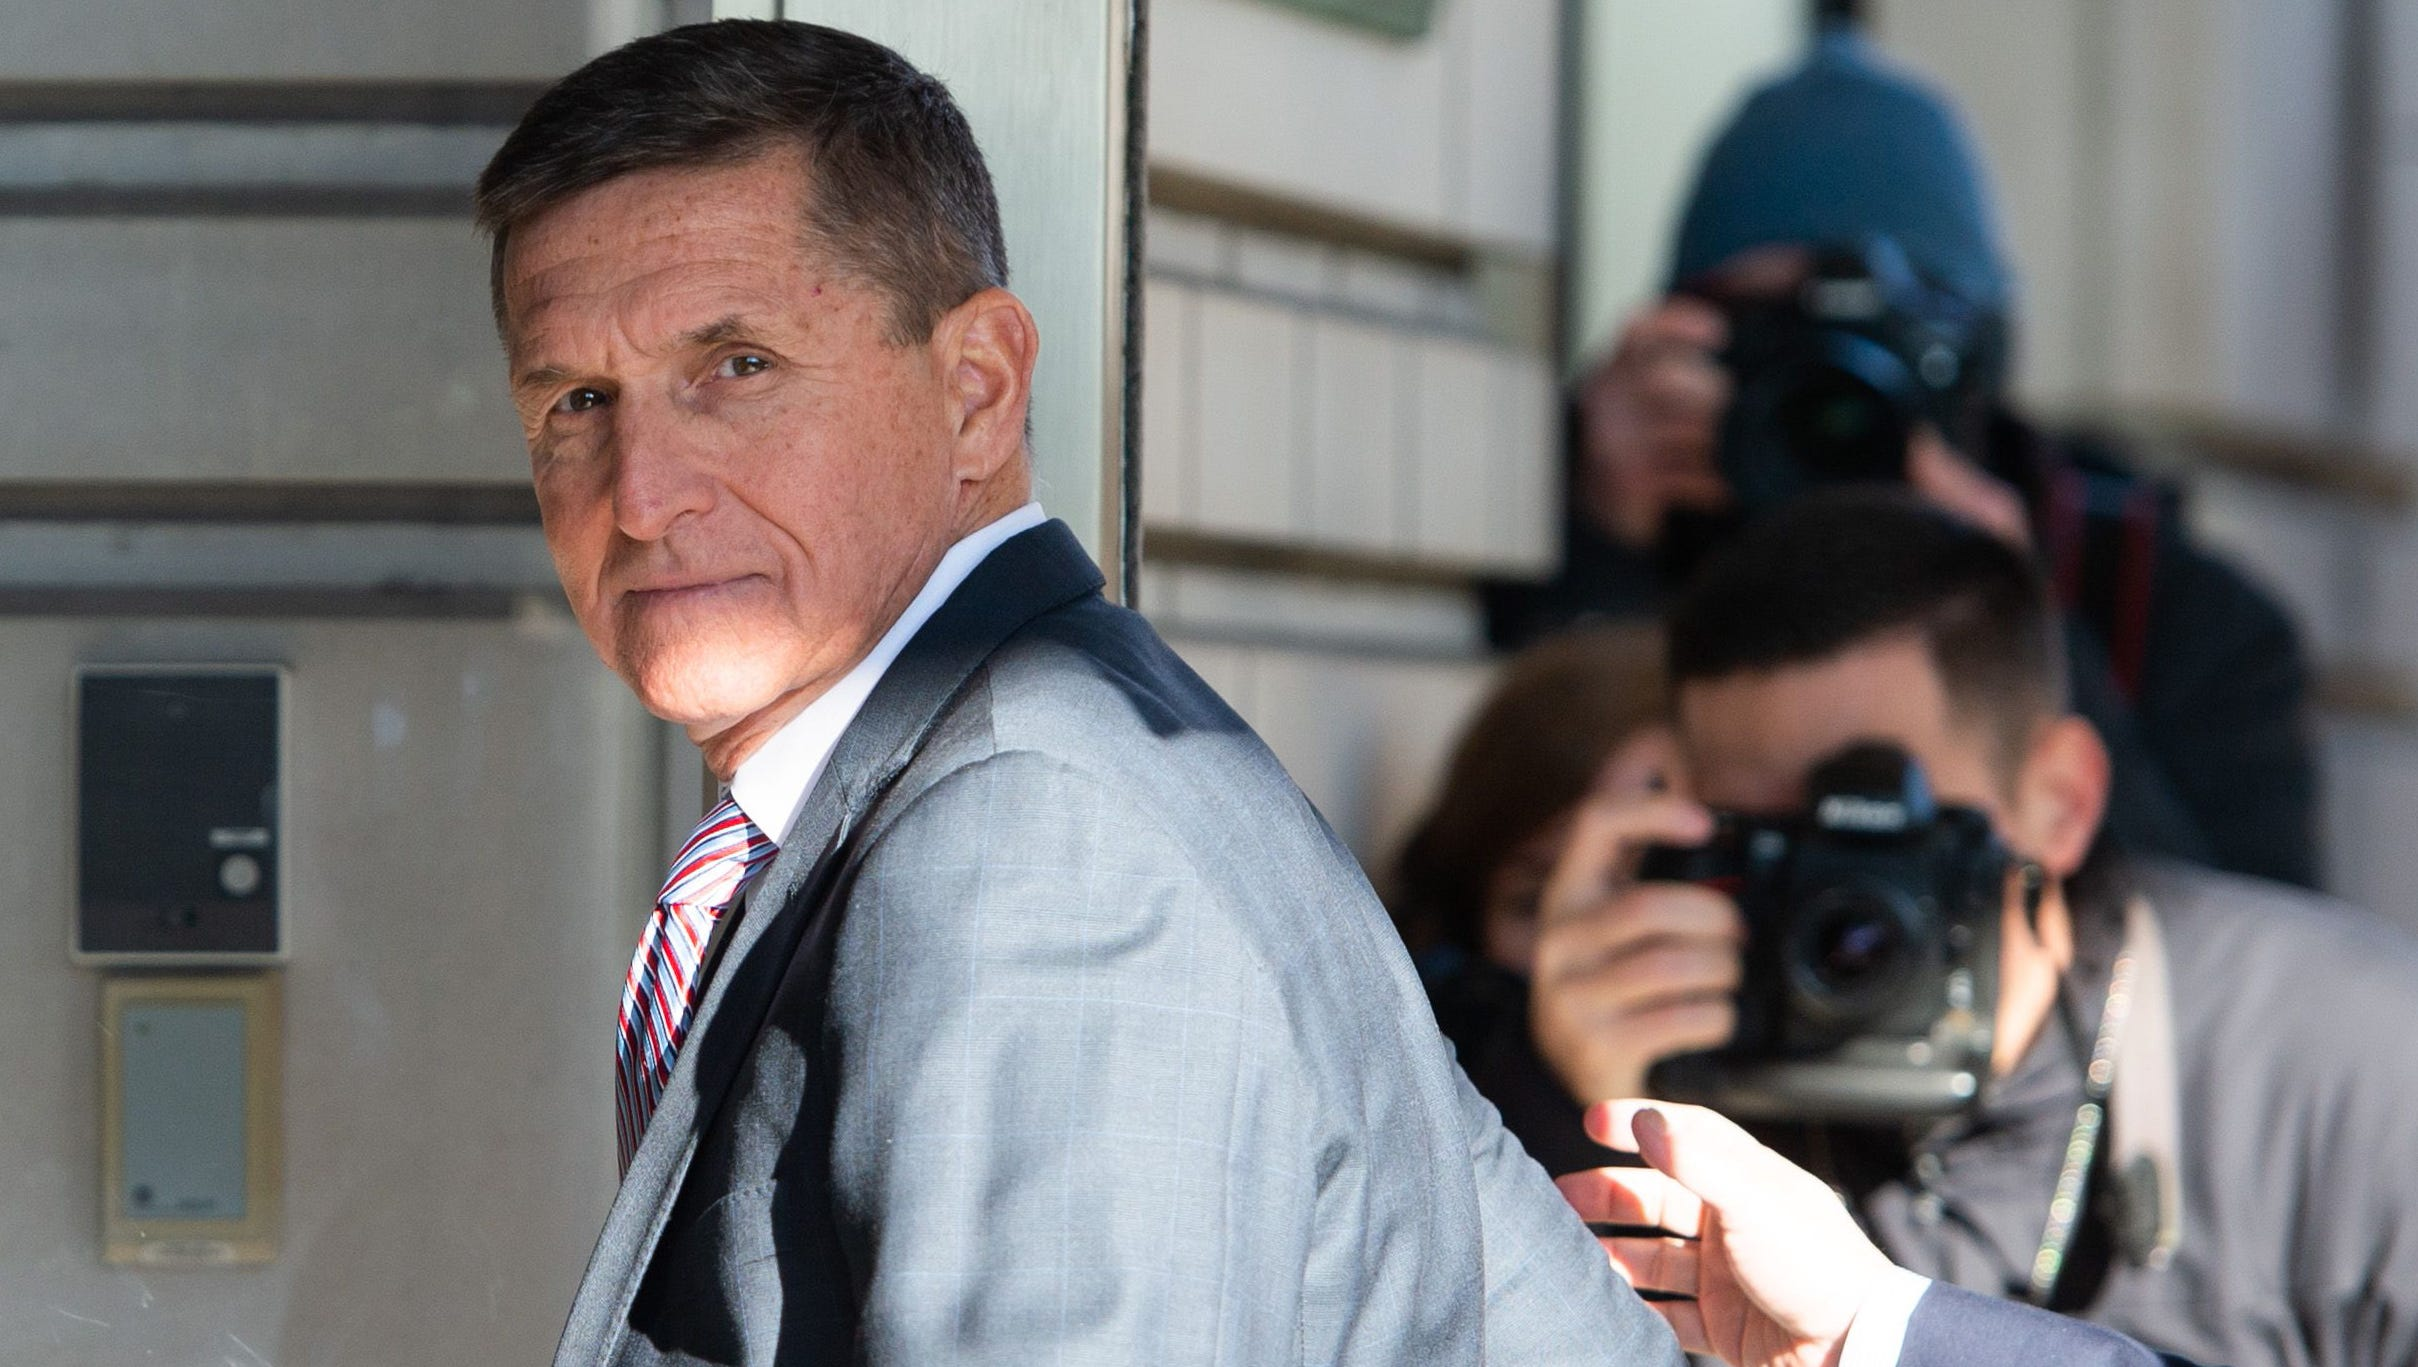 Former national security adviser Michael Flynn arrives for his sentencing hearing at federal court in Washington, Dec. 18, 2018.